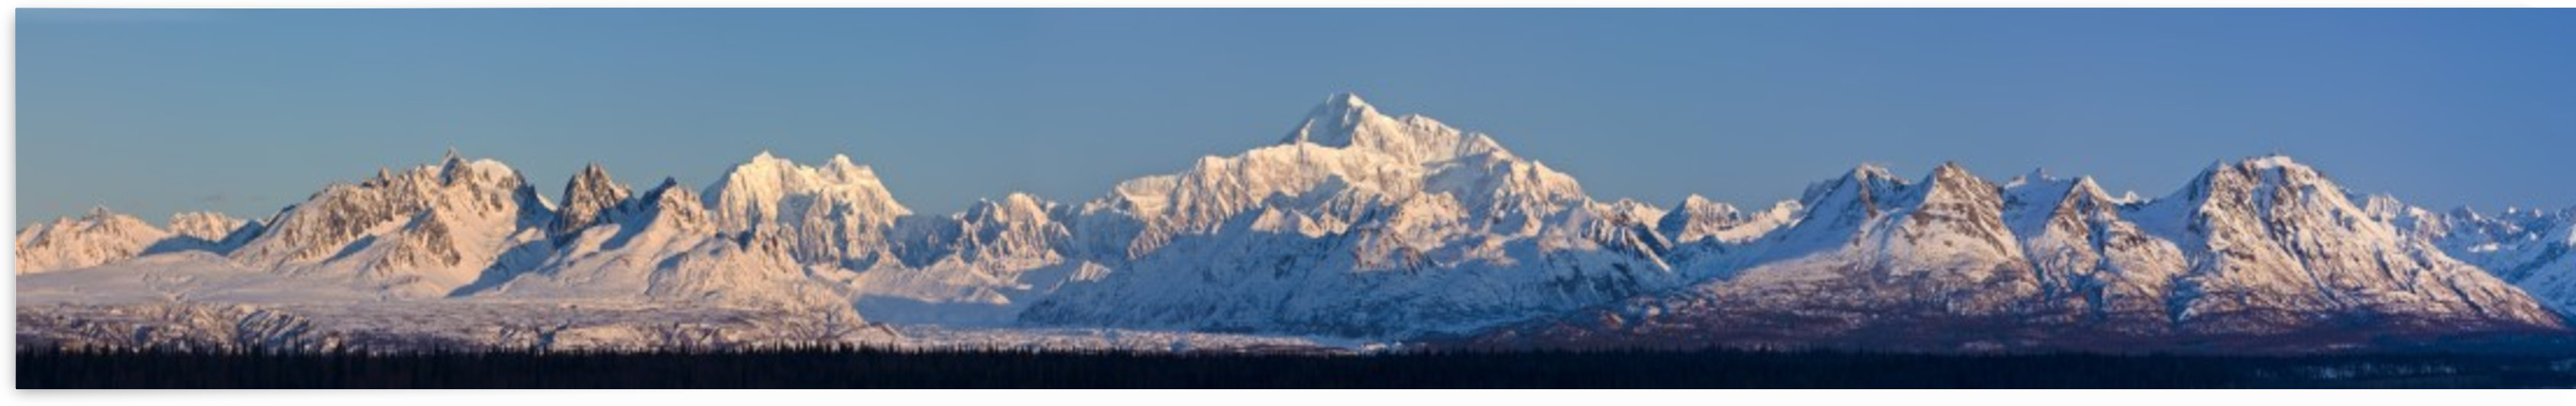 Panoramic view of sunrise over Denali and the Alaska Range, Denali State Park, Southcentral Alaska, Winter by PacificStock